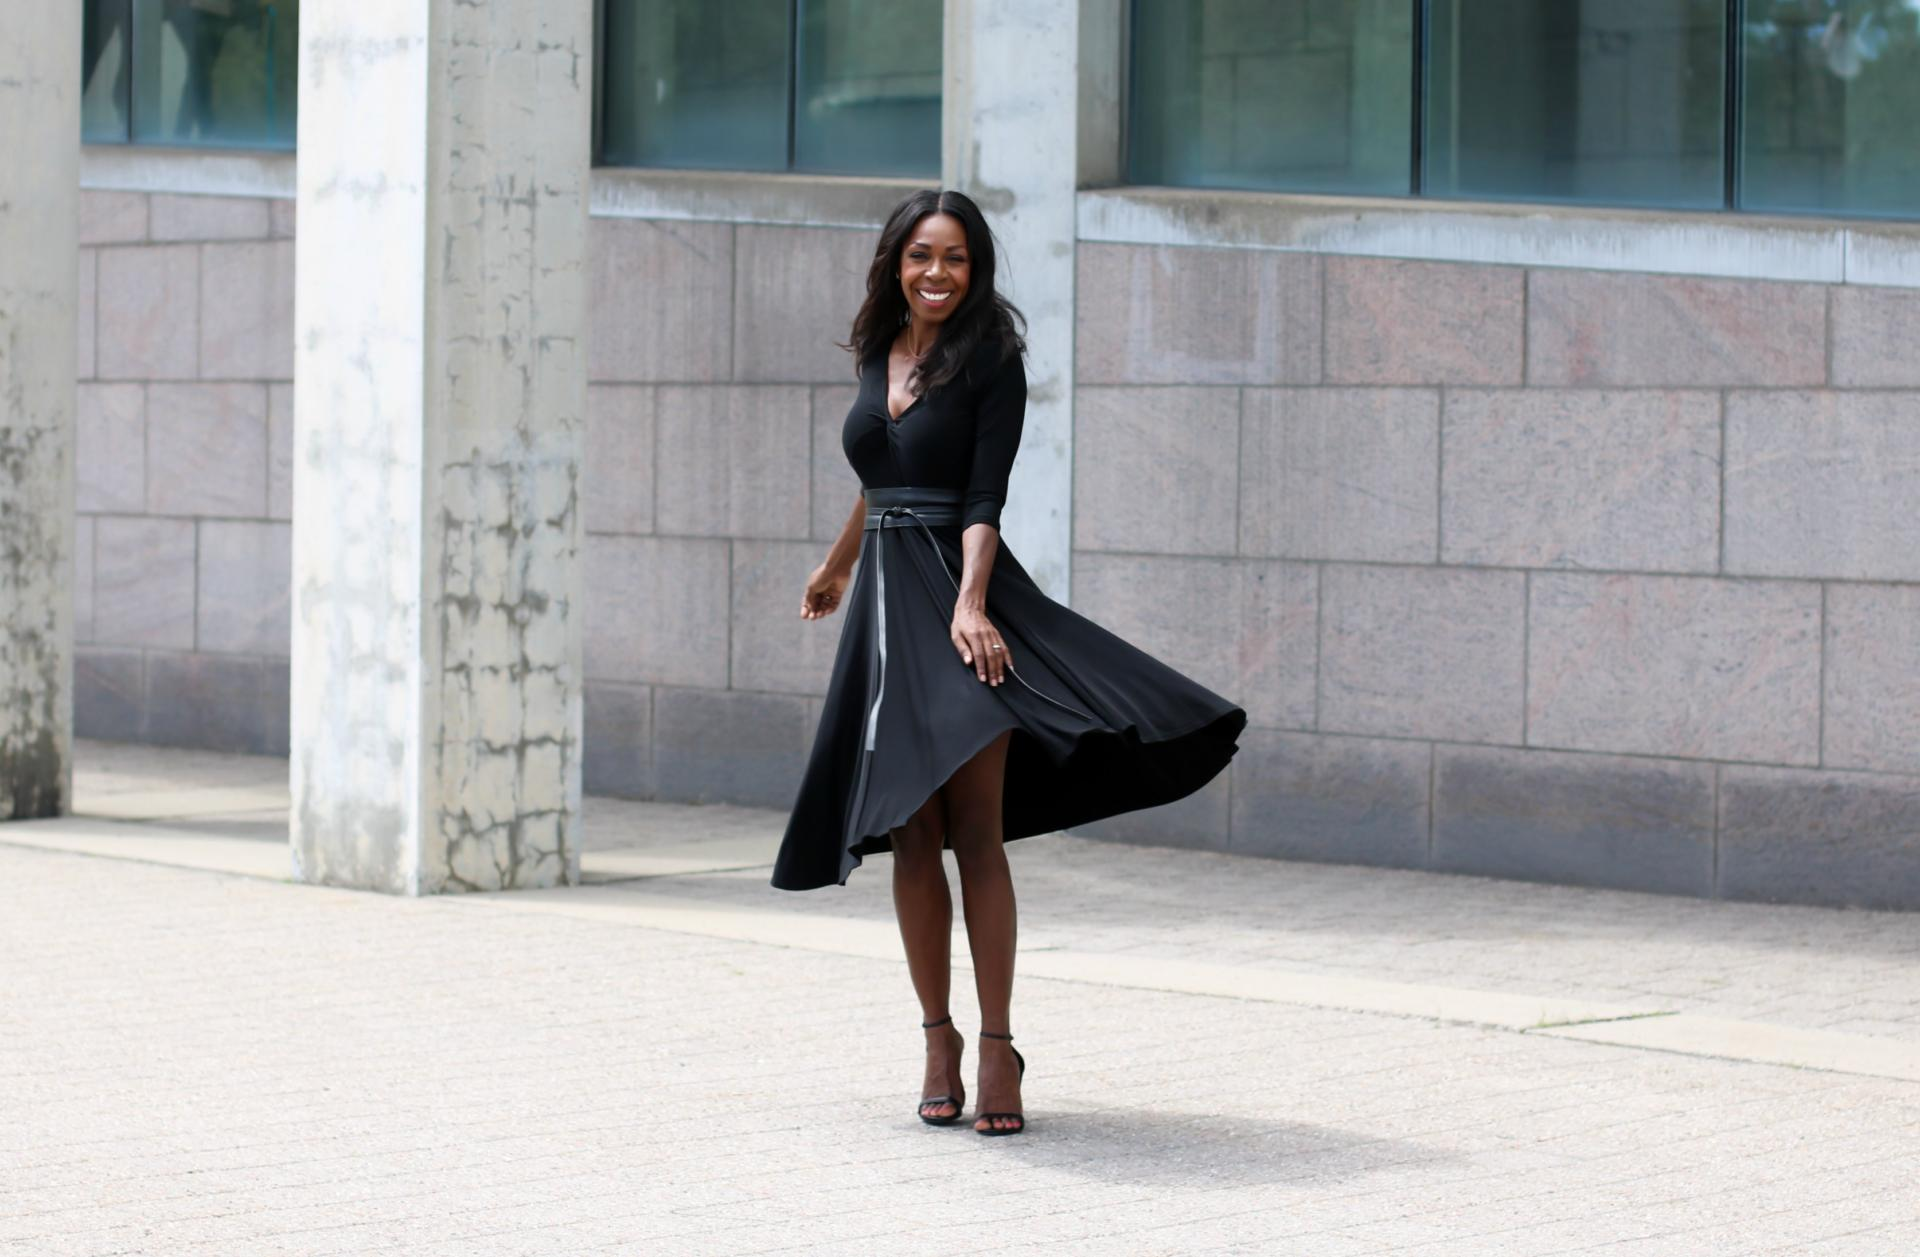 Looking for some cinq à sept style inspiration? Sympli has you covered. Read the post to see how I styled the Sympli Timeless Dress for cocktail hour!